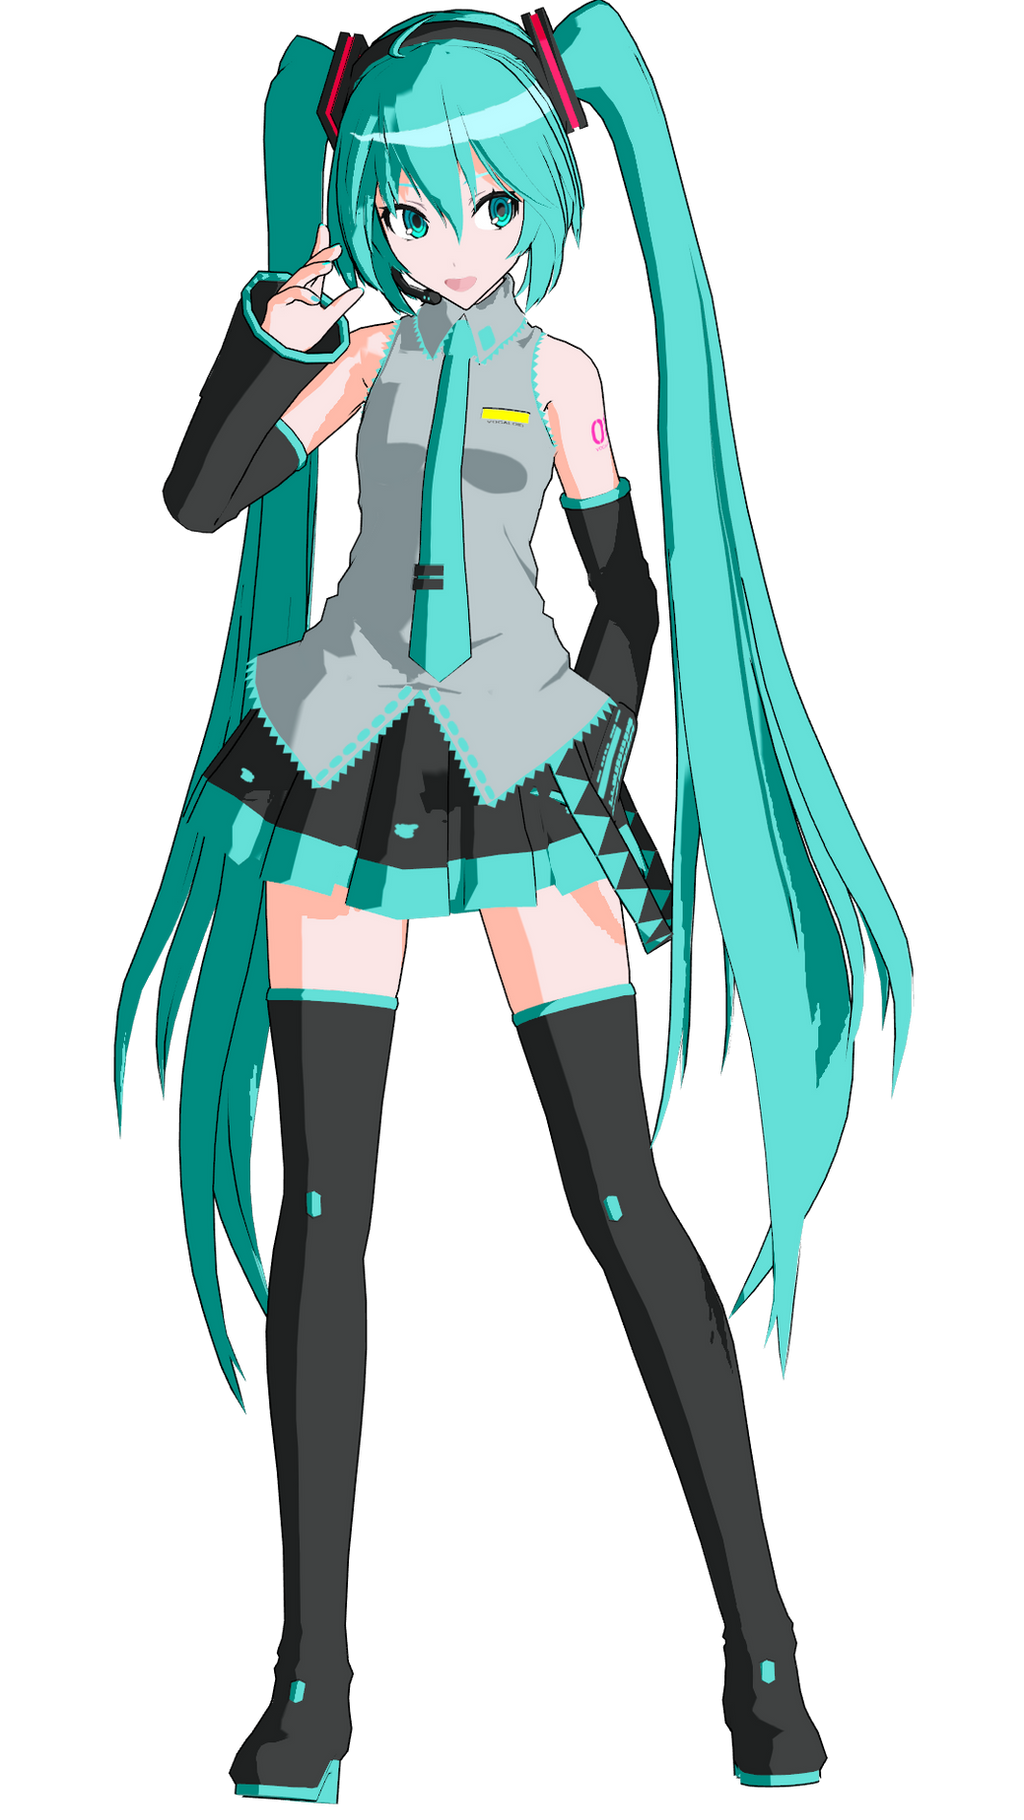 1000  images about hatsune miku on Pinterest | Kaito, Cosplay wigs ...